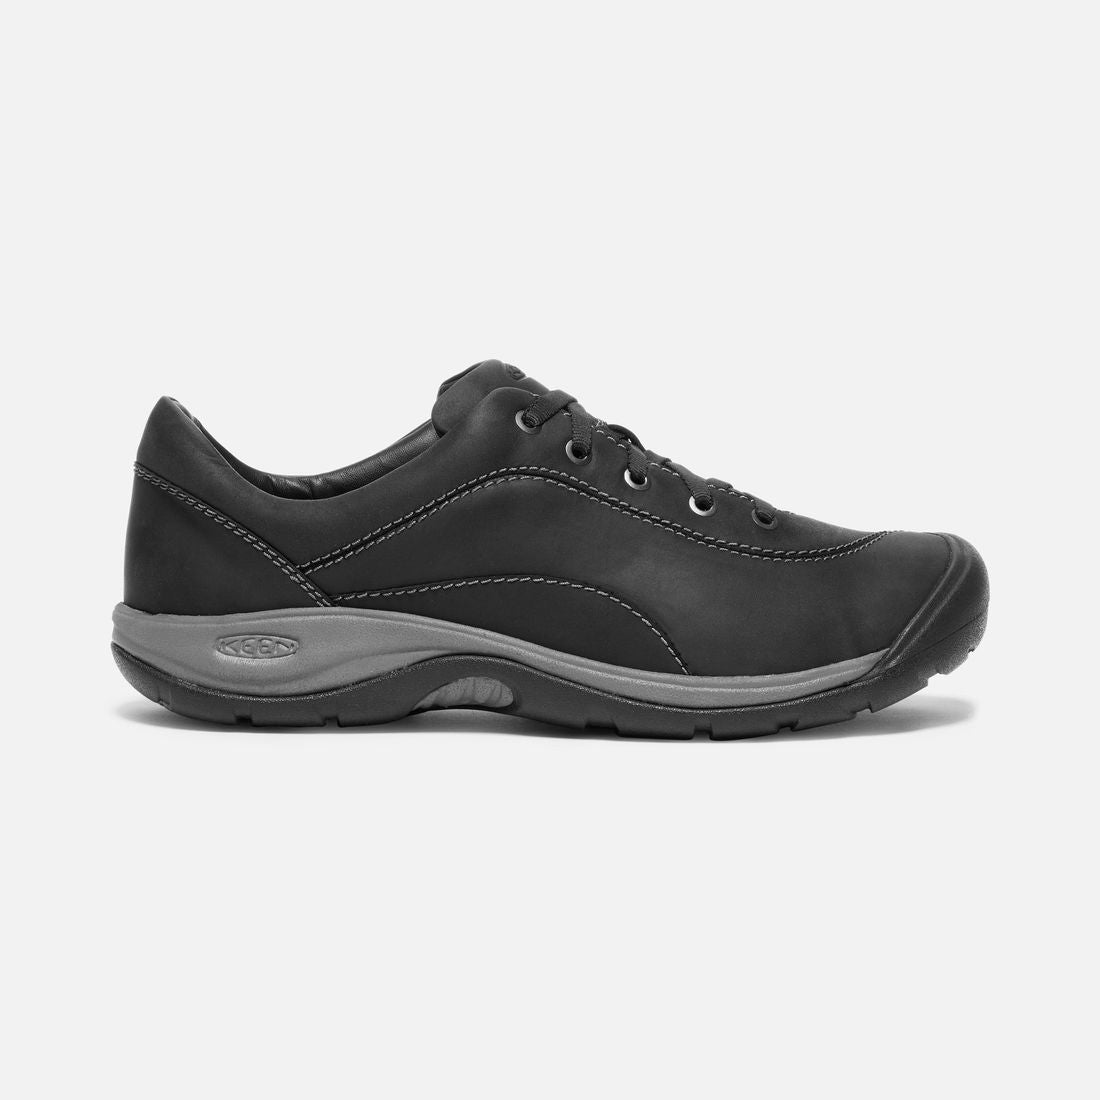 Keen Presidio II Shoe (Women's) - Black Steel Grey - Find Your Feet Australia Hobart Launceston Tasmania